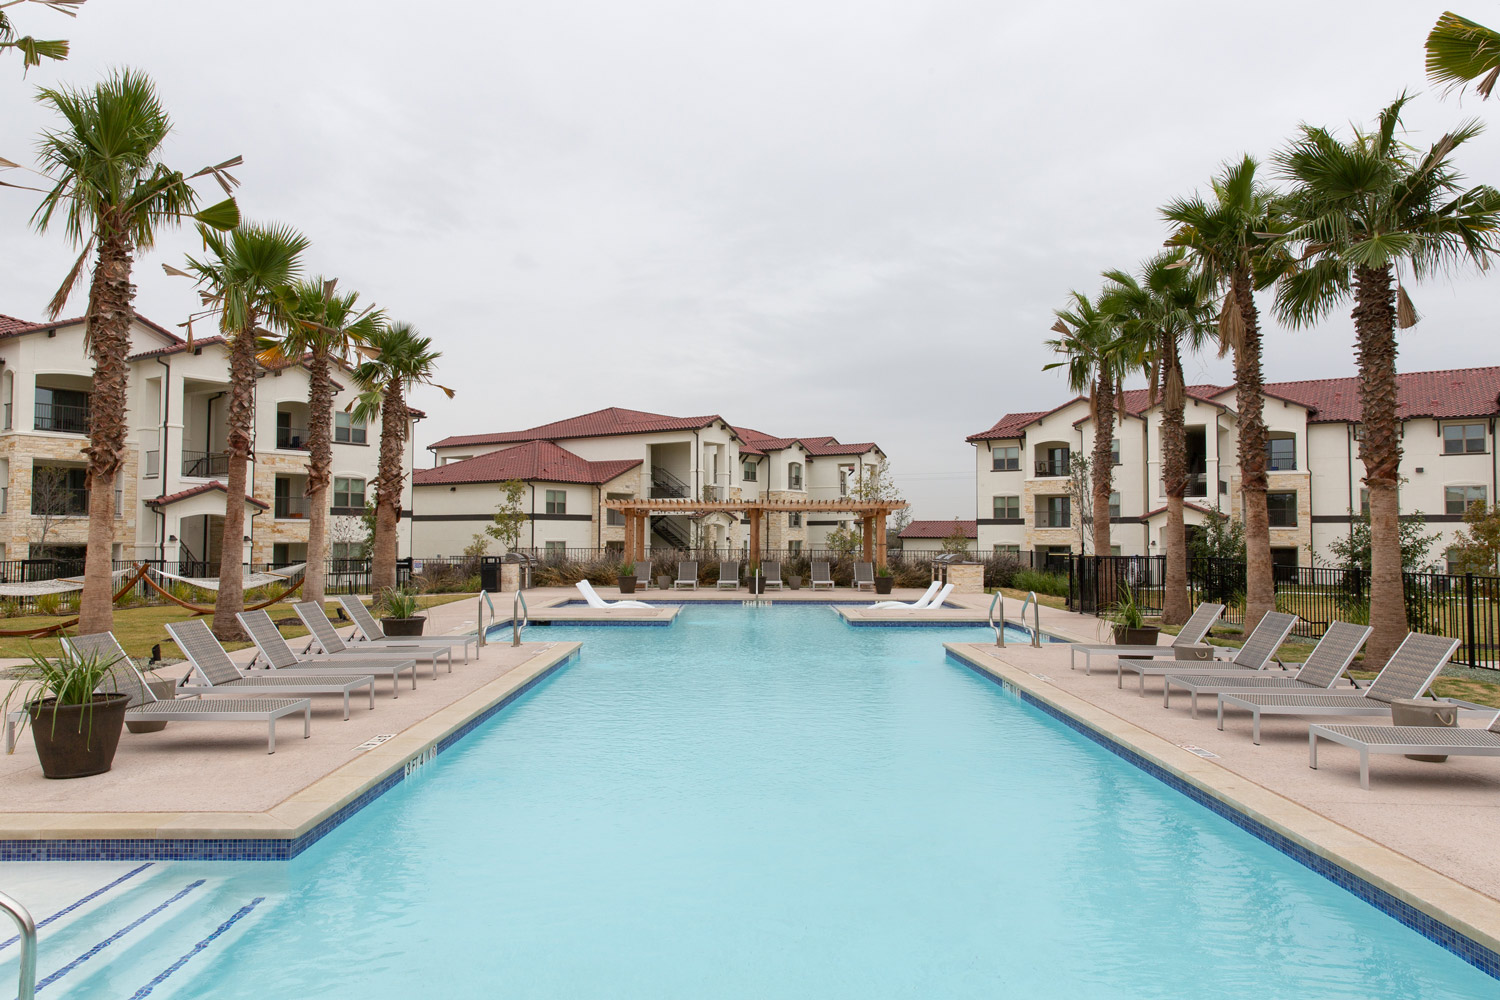 Resort-Style Swimming Pool at Oxford at Santa Clara Apartments in Pflugerville, Texas